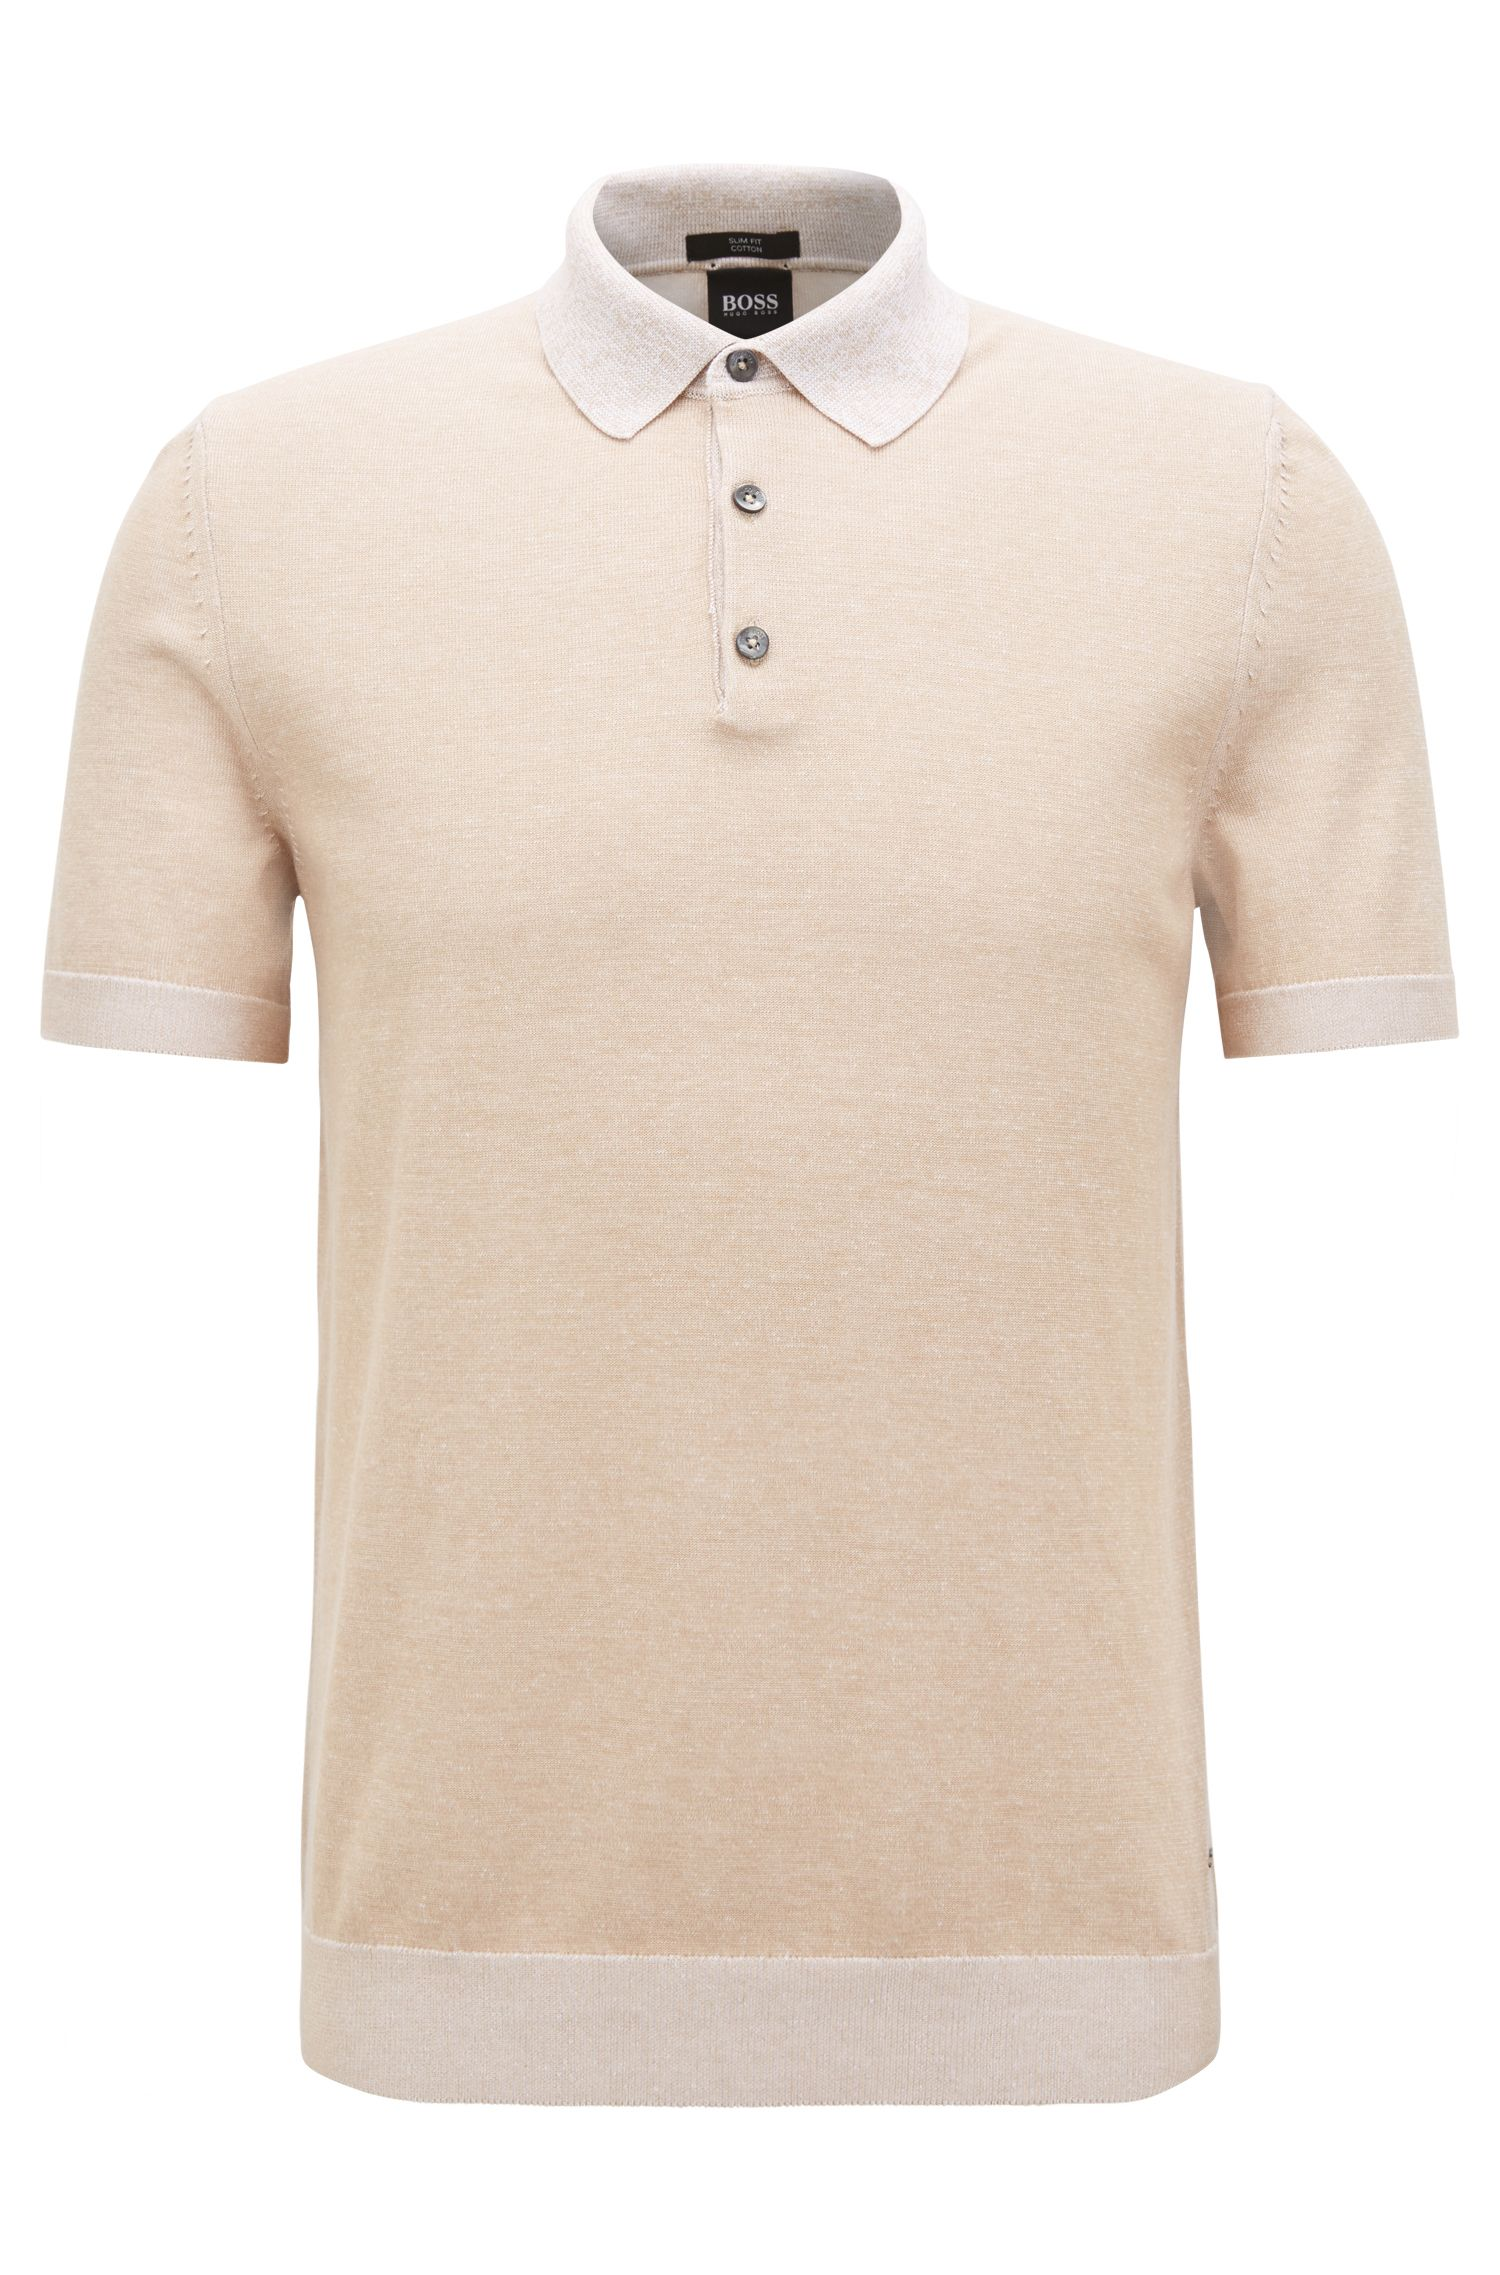 Slim-fit polo shirt in knitted melange cotton